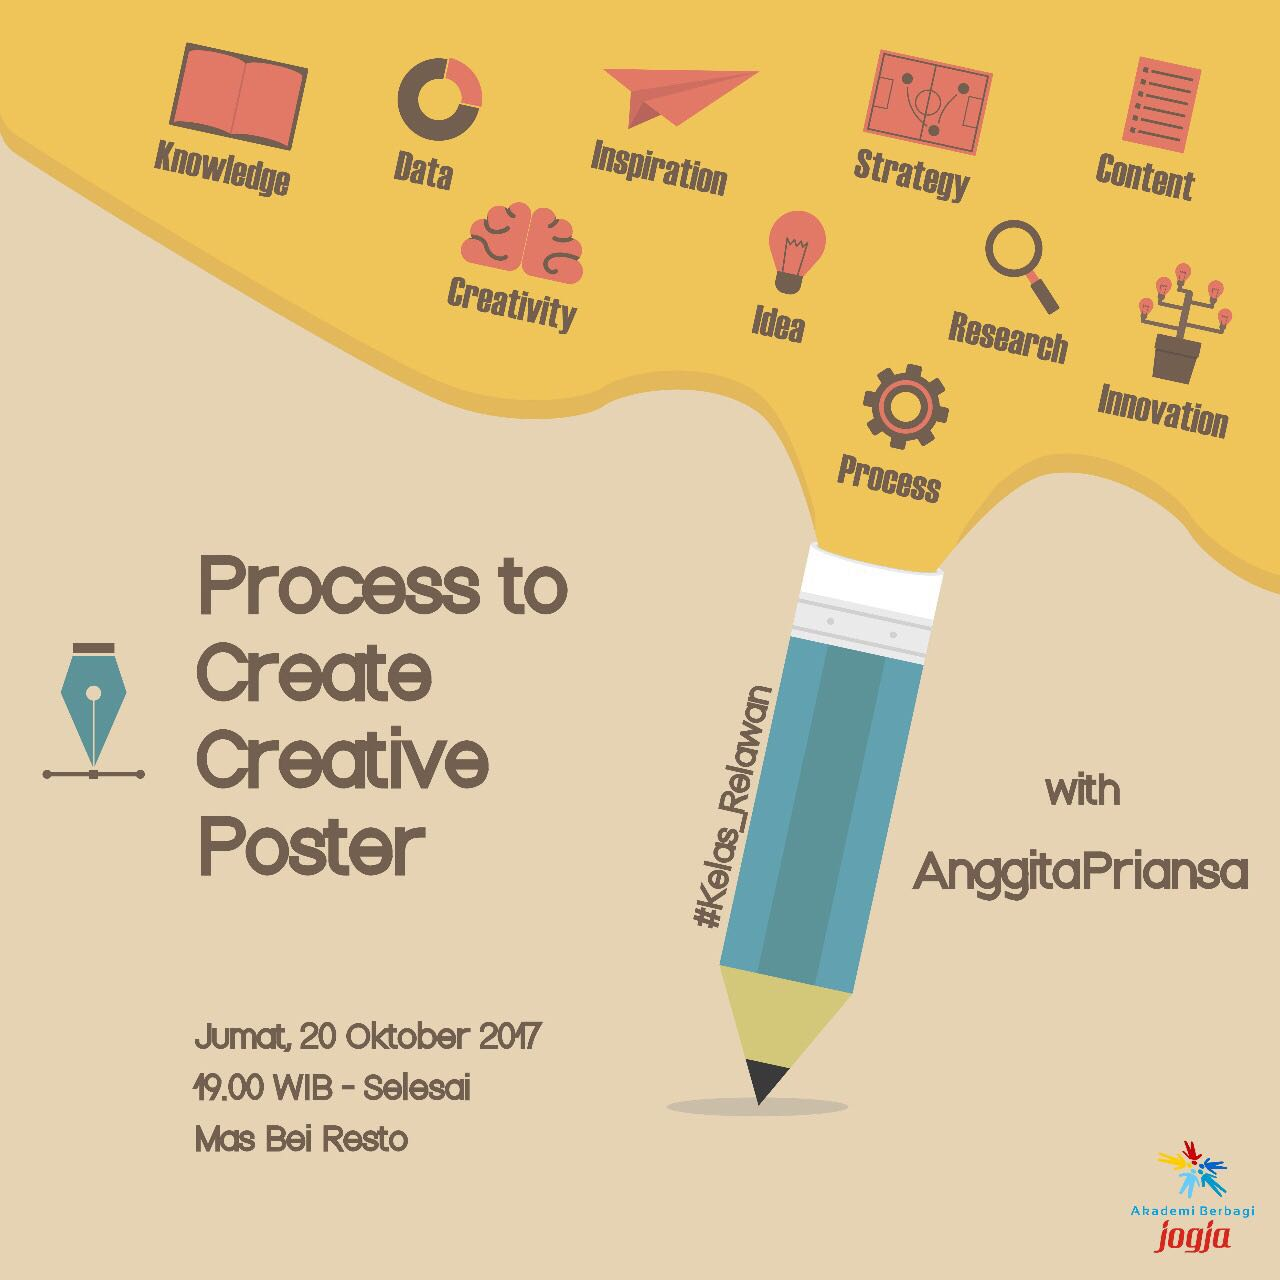 (Kelas Relawan) Jogja: Process to Create Creative Poster